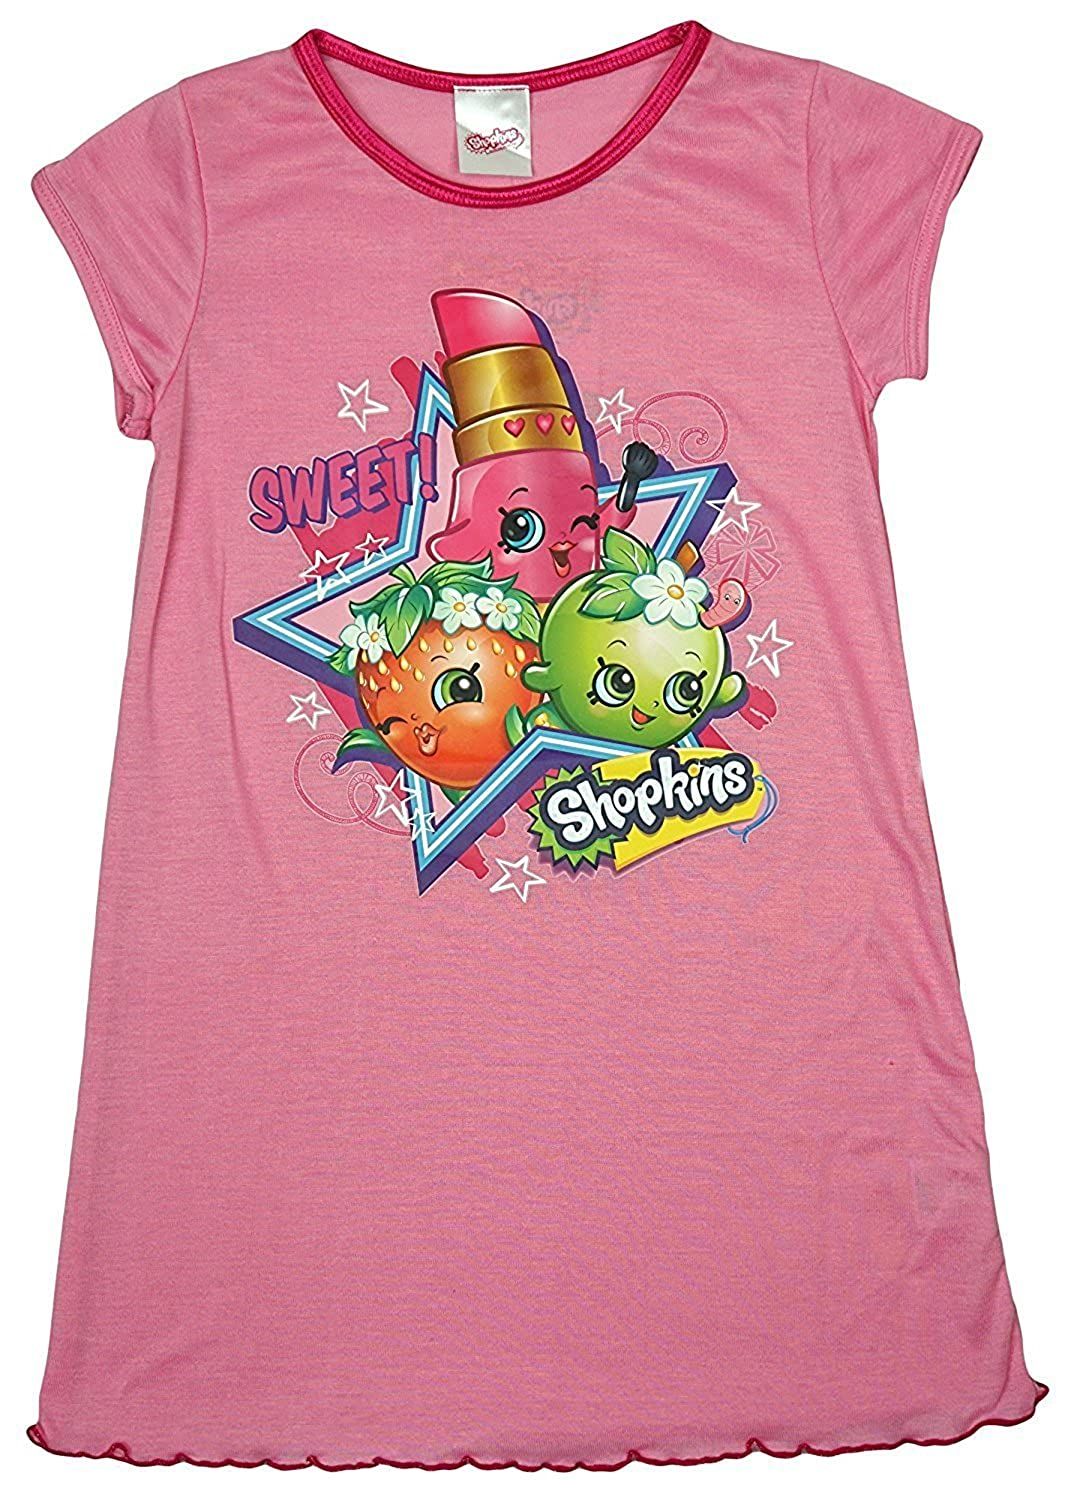 Shopkins Nightdress Pyjamas Nightie